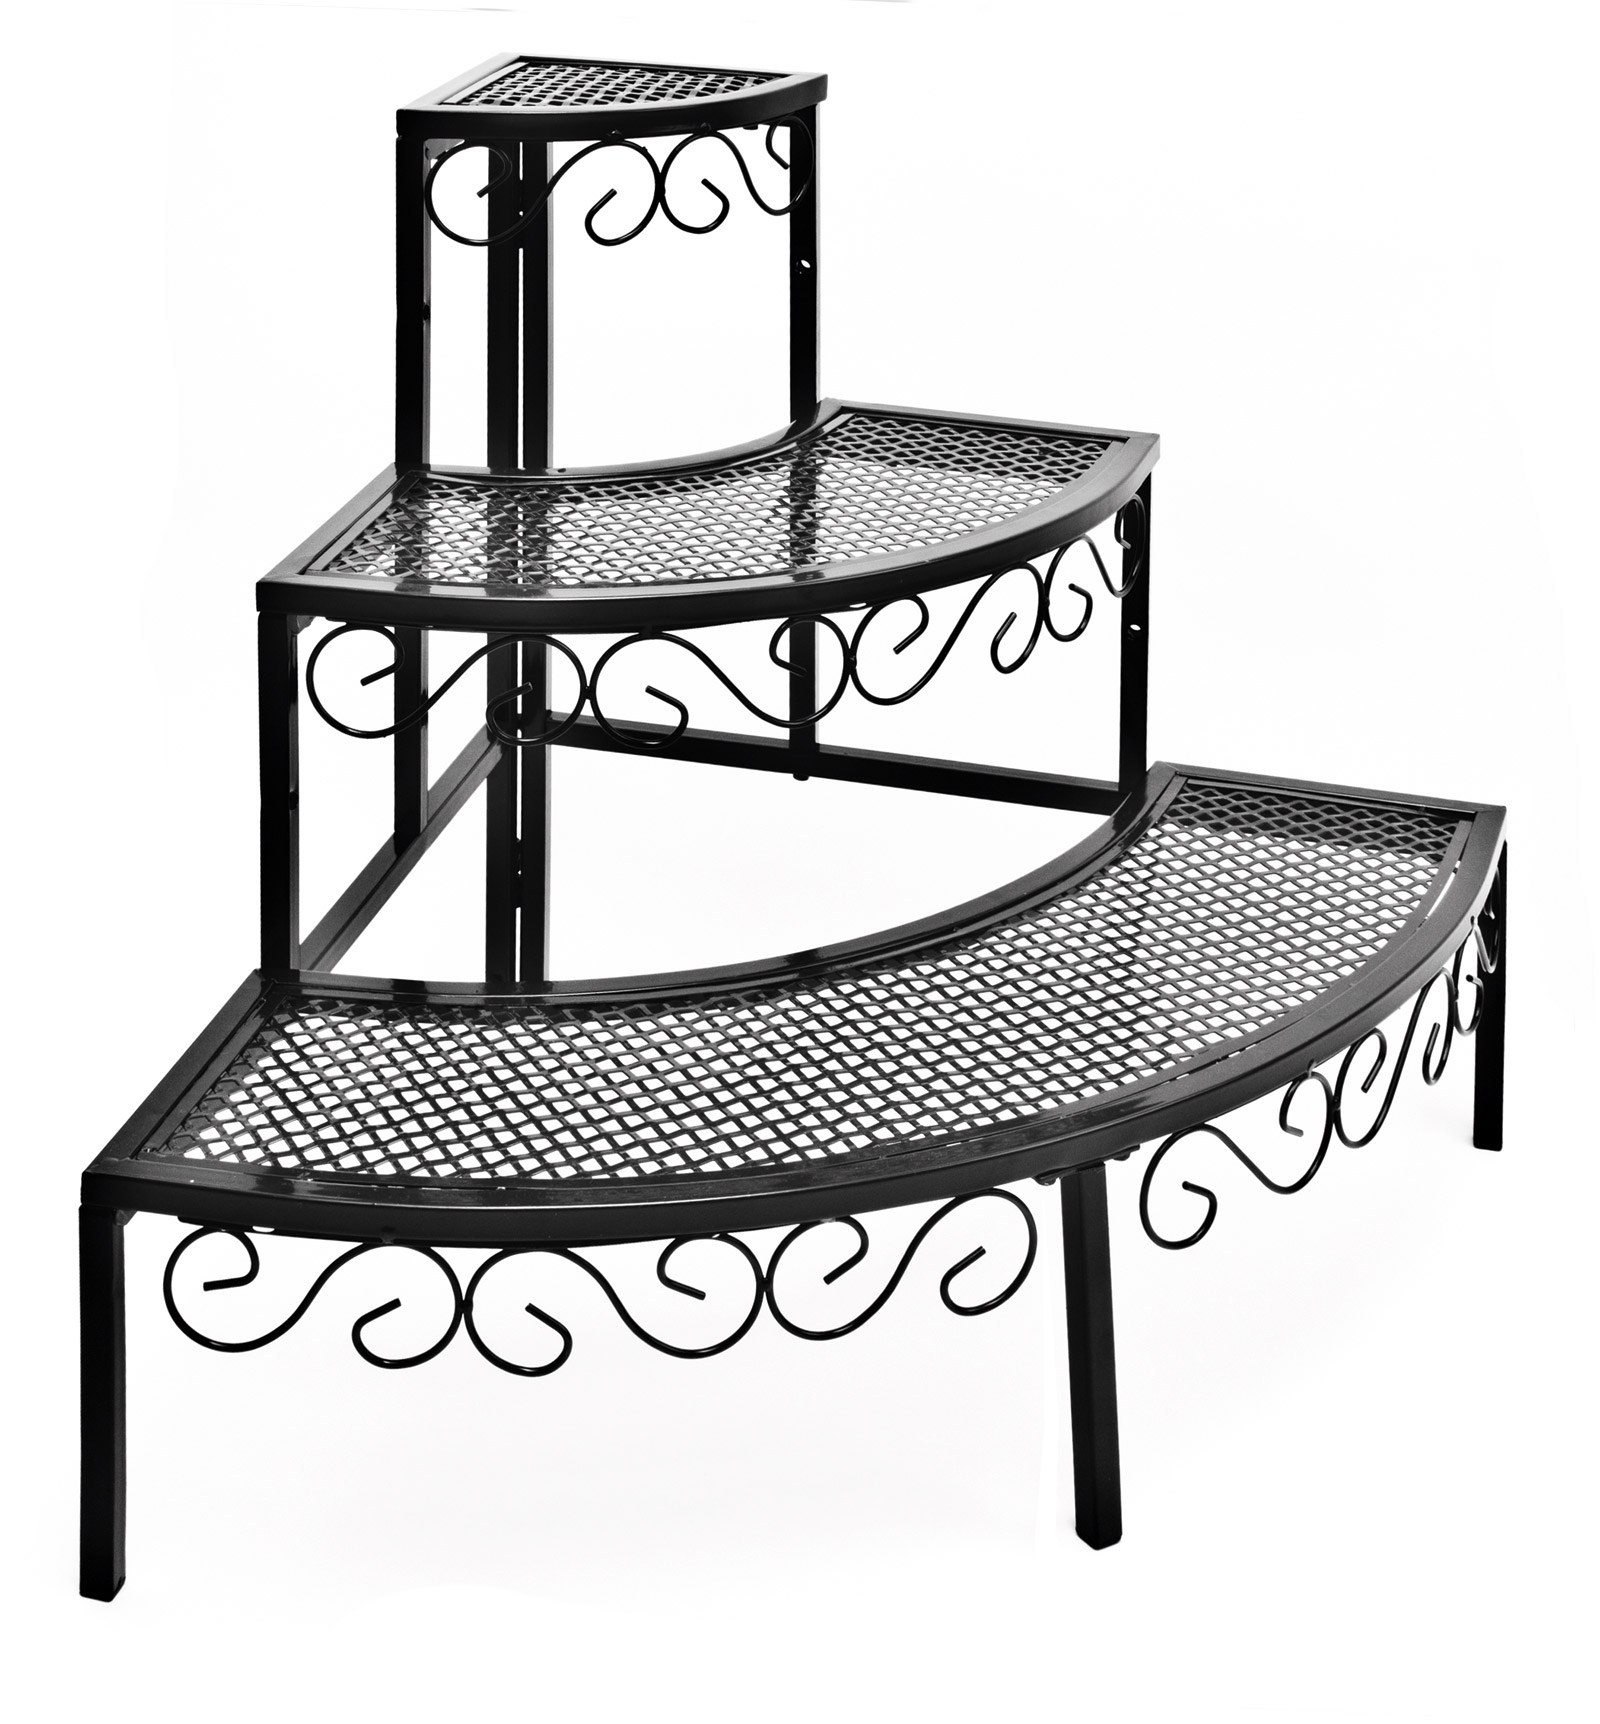 eck pflanzenregal blumen balkon blumentreppe nostalgie gartenregal 46998 ebay. Black Bedroom Furniture Sets. Home Design Ideas